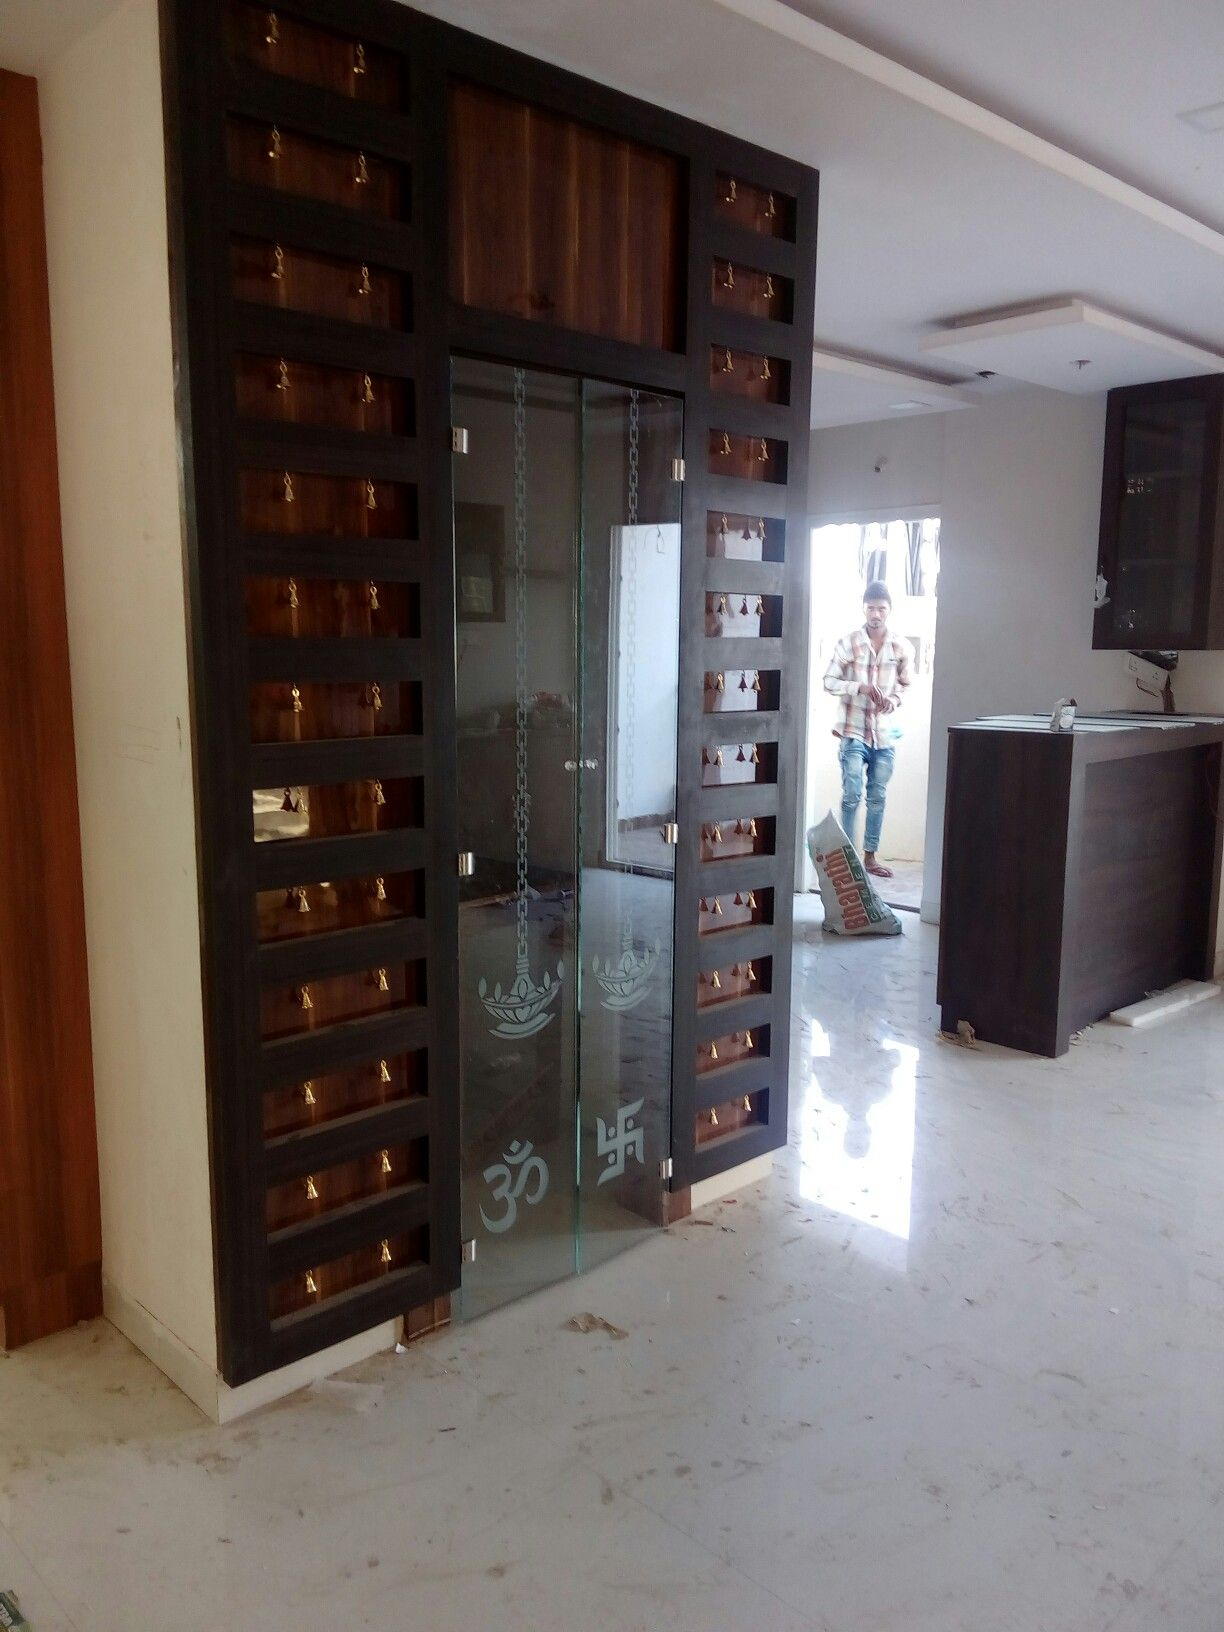 Pooja Room Door Designs Pooja Room: Puja Room Glass Door With Bells, Best Suit For Flats